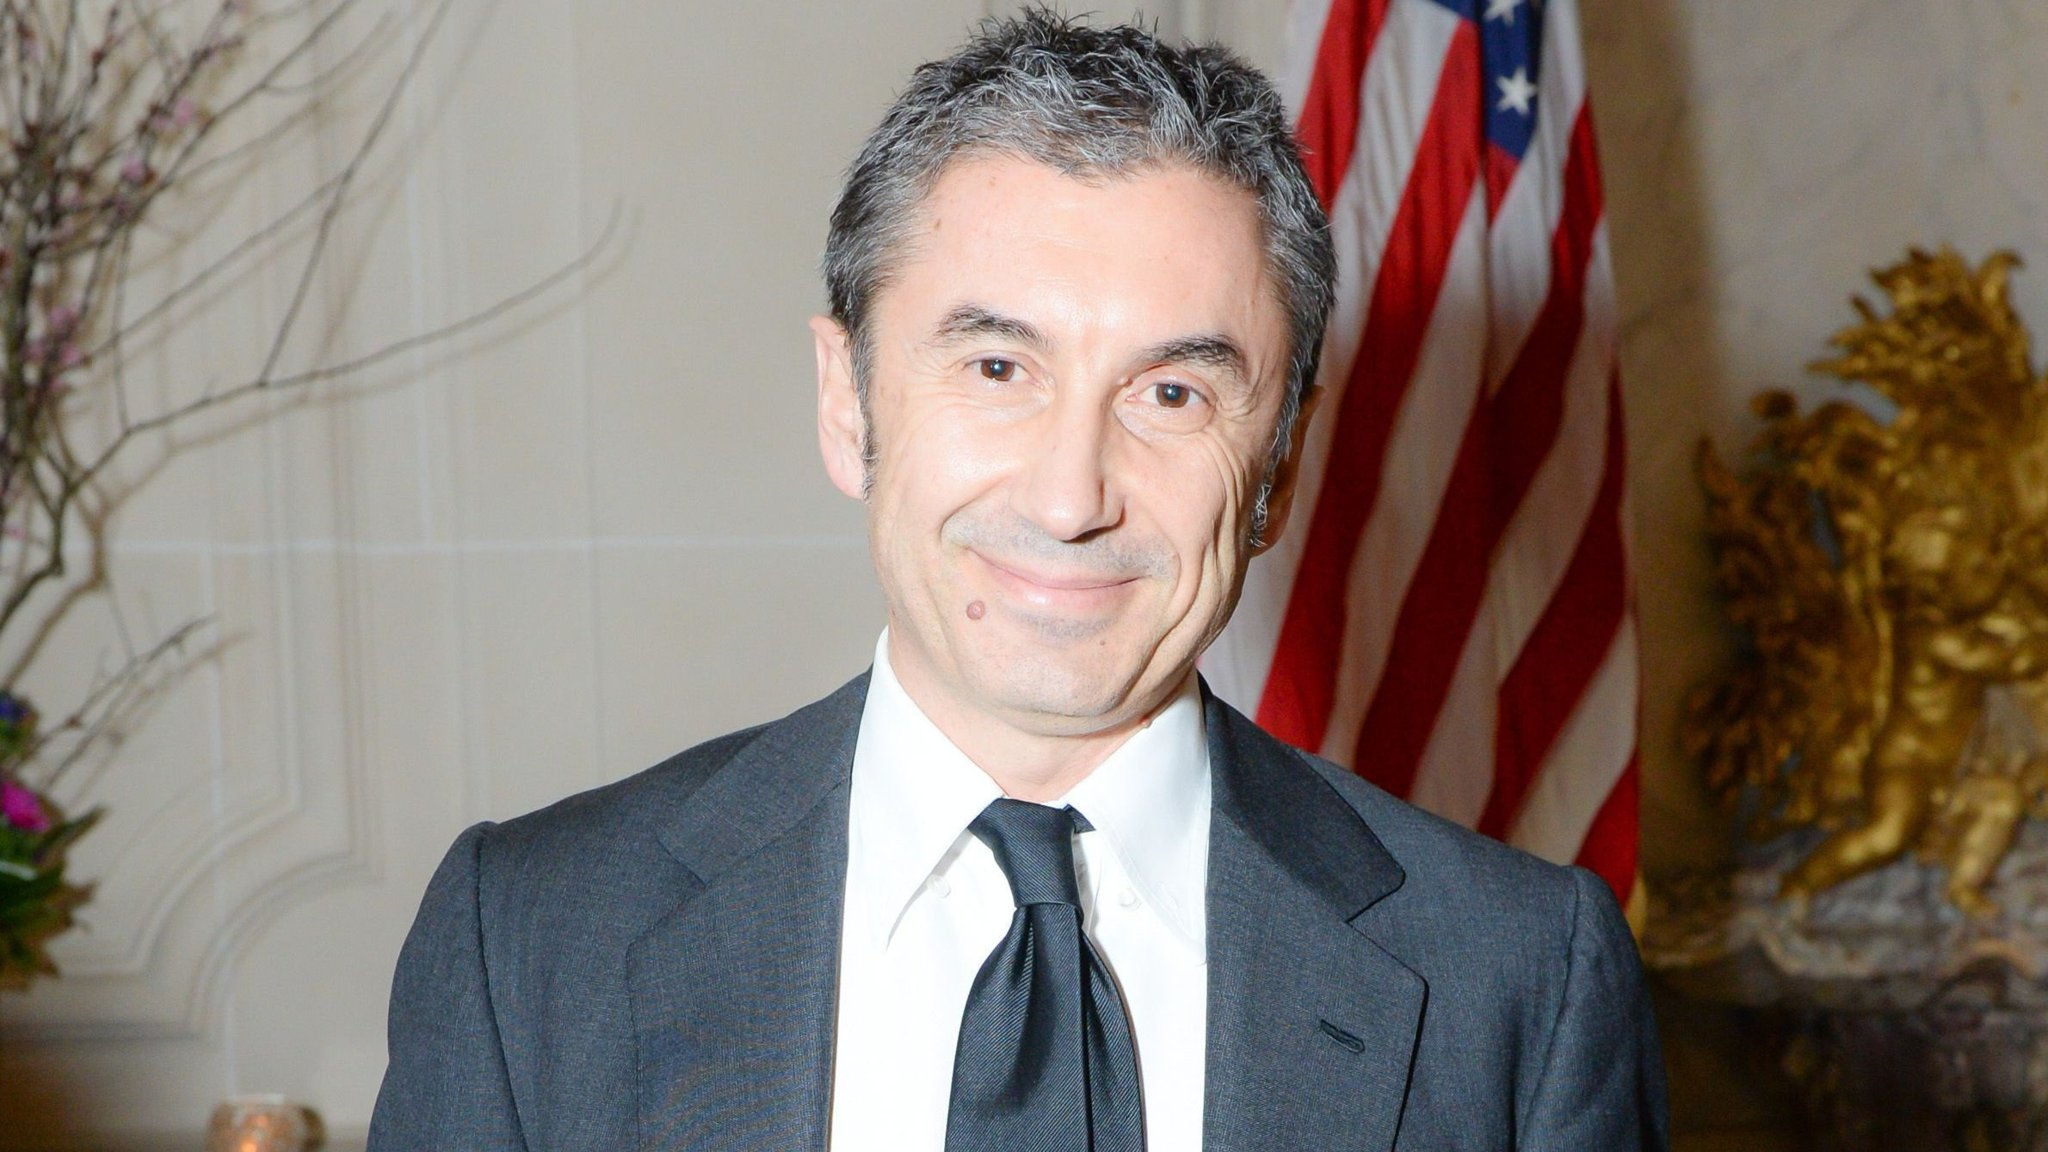 Marco Gobbetti takes over as the new CEO of Burberry catalog photo